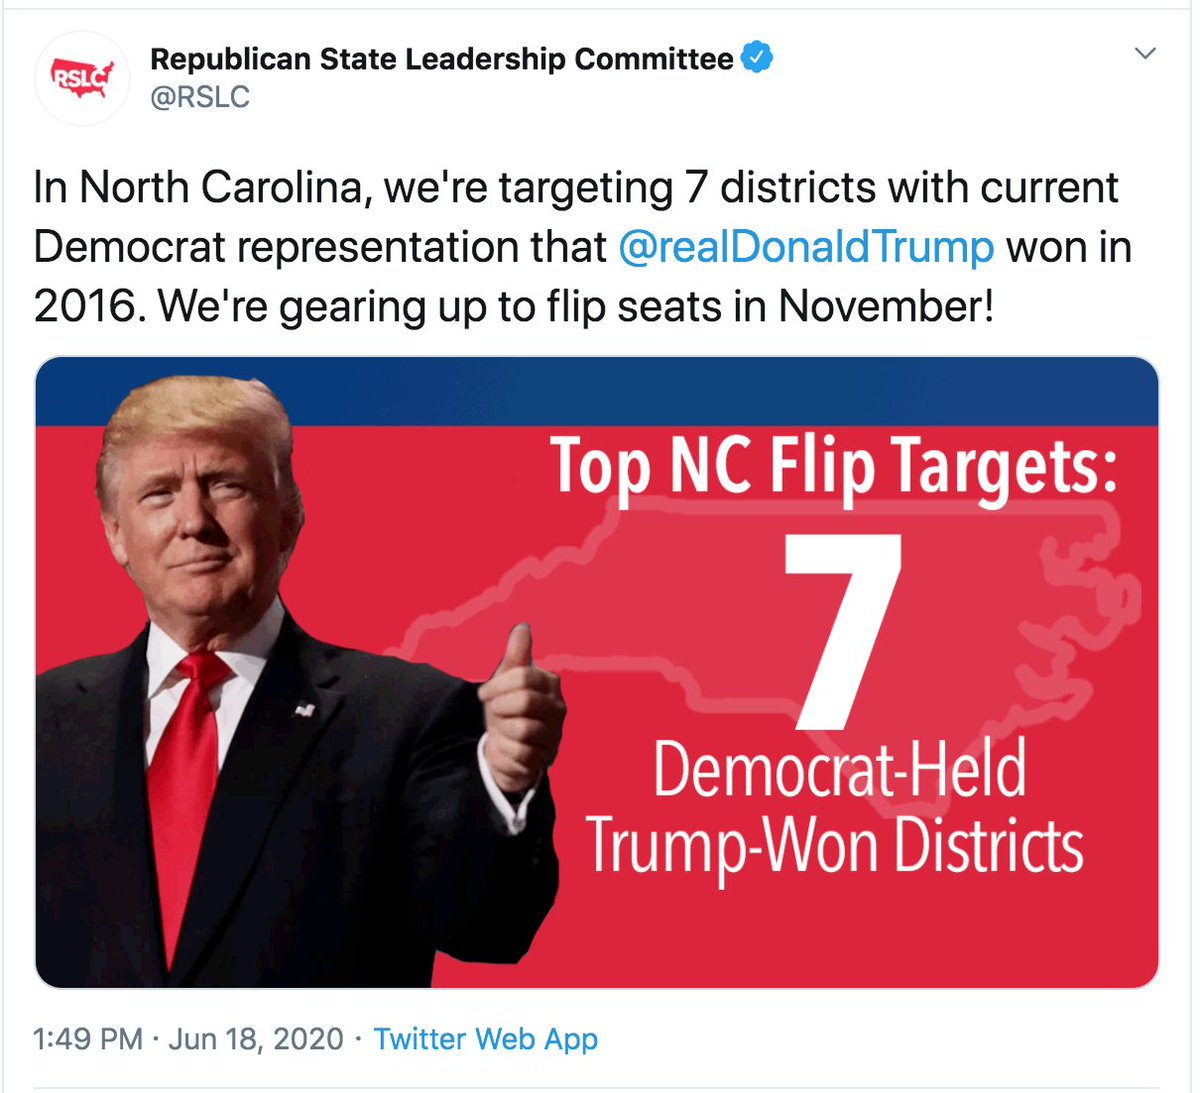 The Republican party officially announced something we already knew: they're targeting my race. My district is one of the 7. Trump won in 16 but I won in 18 by 415 votes. Donate before June 30th to send a message that this seat will stay blue! secure.actblue.com/donate/the-com…